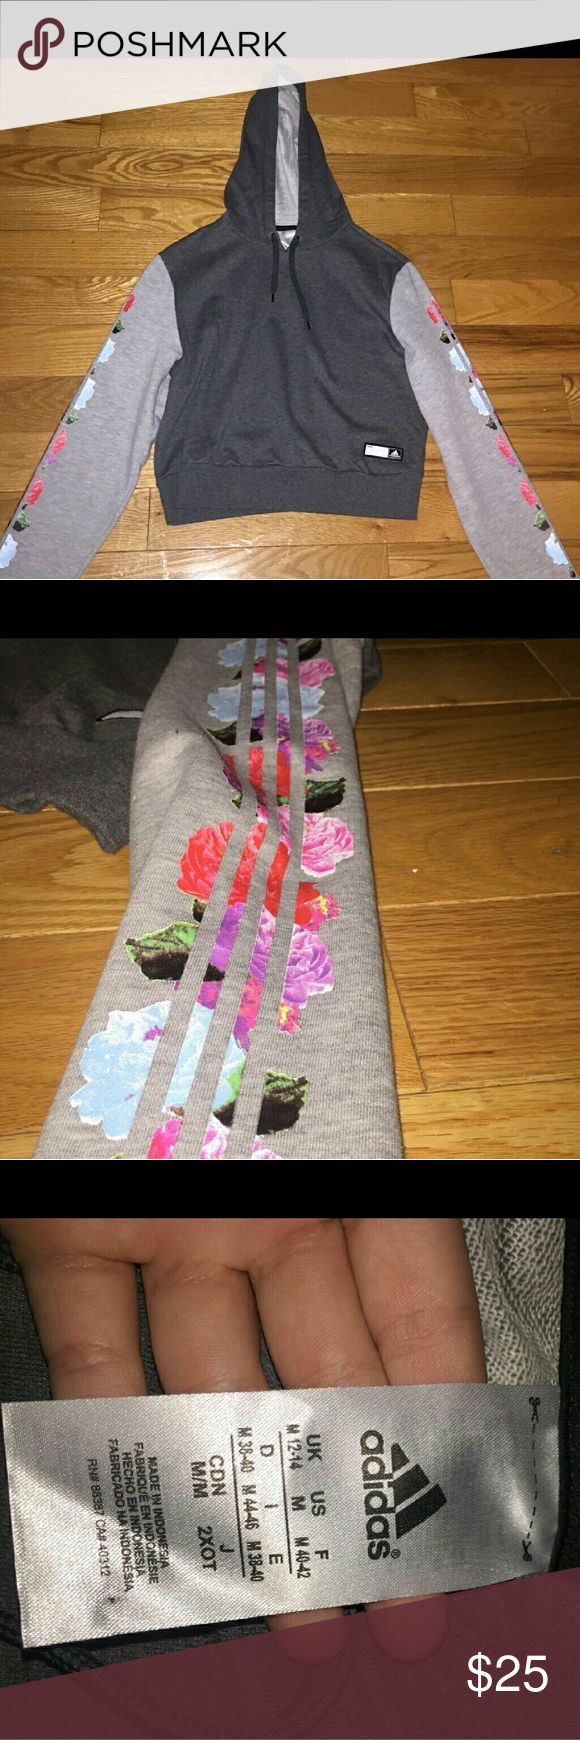 Adidas Floral Hoodie In good condition. Adidas floral hoodie. No piling or cracking of the design. Adidas Tops Sweatshirts & Hoodies